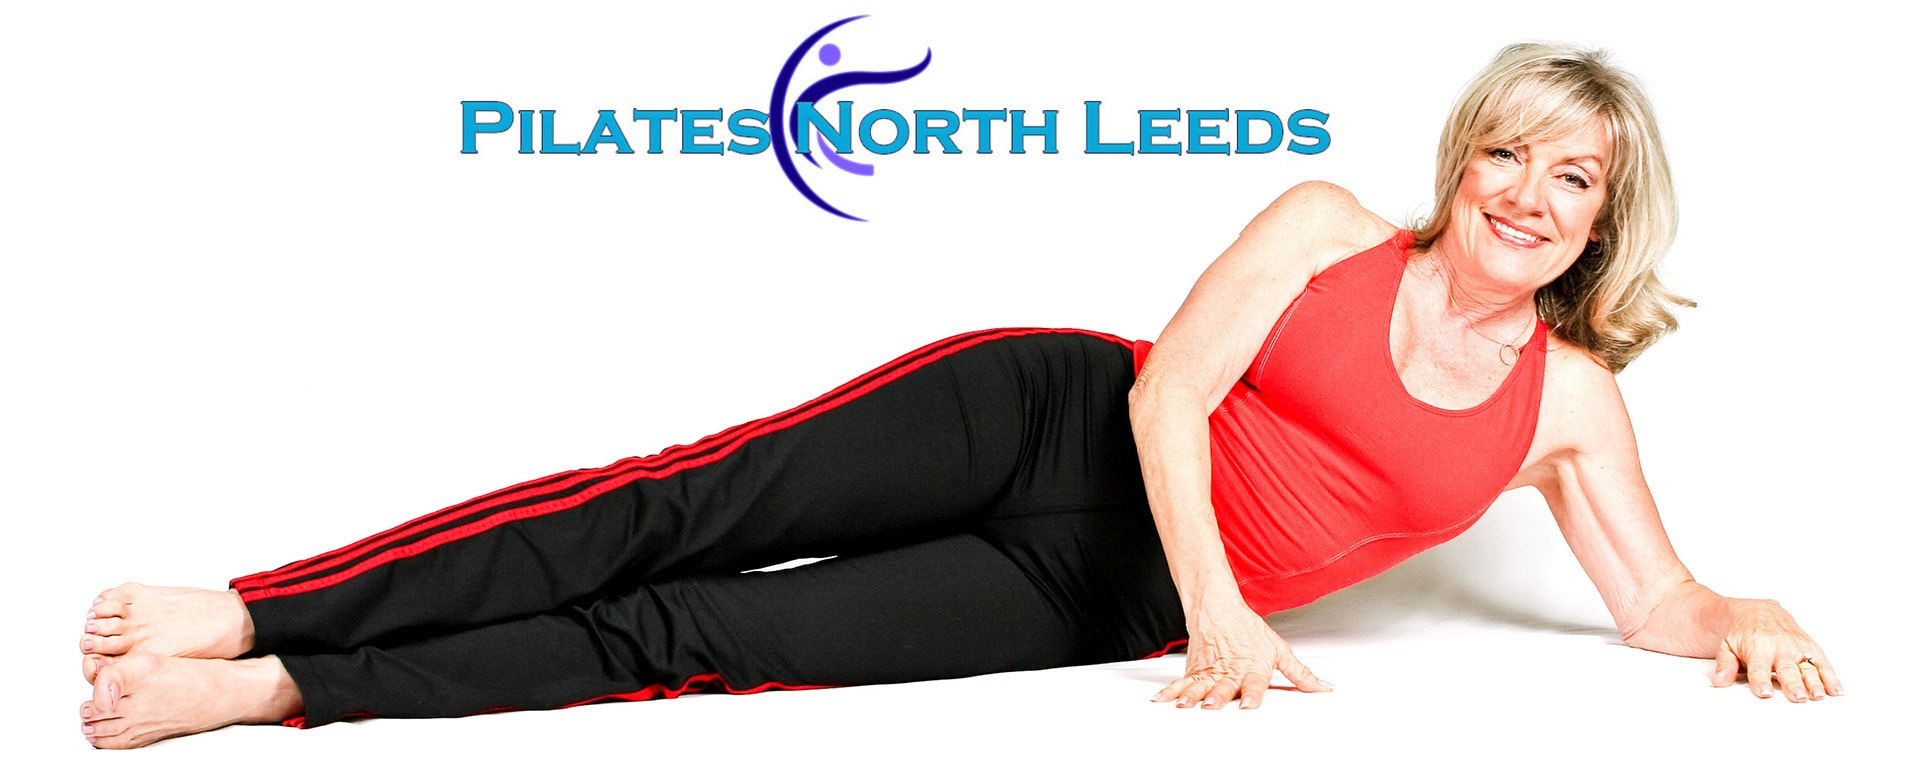 Pilates North Leeds